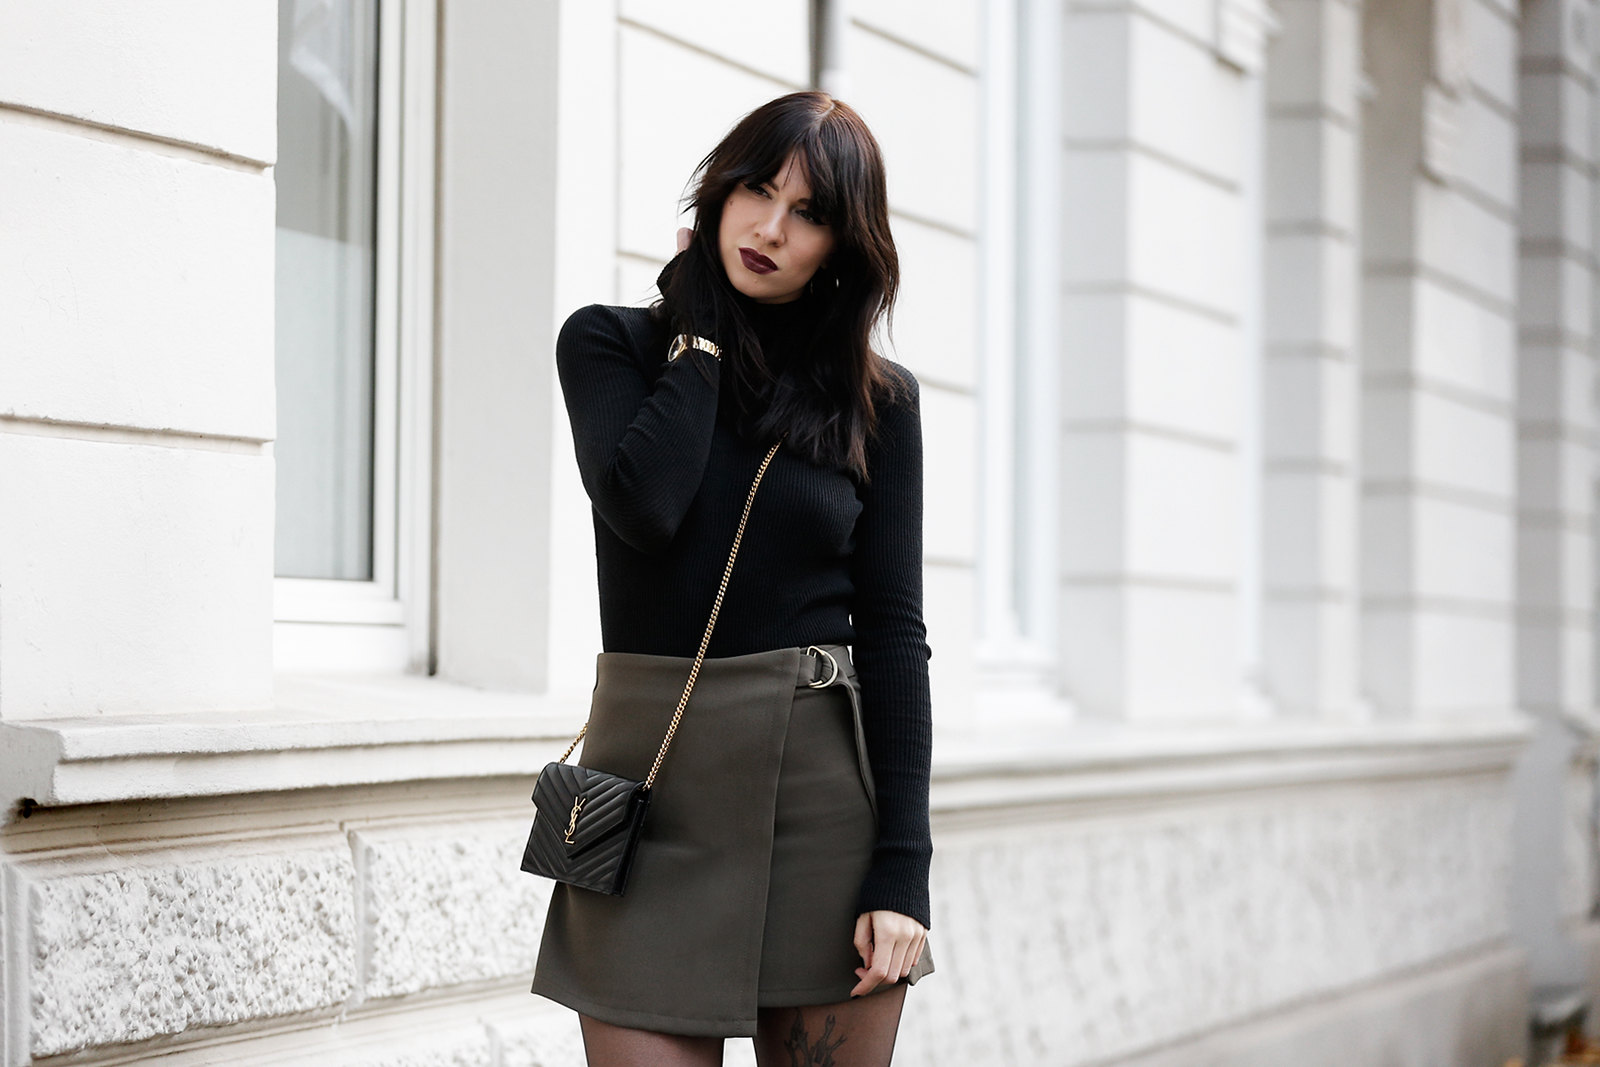 ootd outfit look magazine style mag fashion fashionblogger autumn gothic look black lips dark turtleneck golden watch ysl saint laurent paris bag mini skirt legs boots bangs brunette parisienne modeblogger düsseldorf berlin cats & dogs ricarda schernus 2